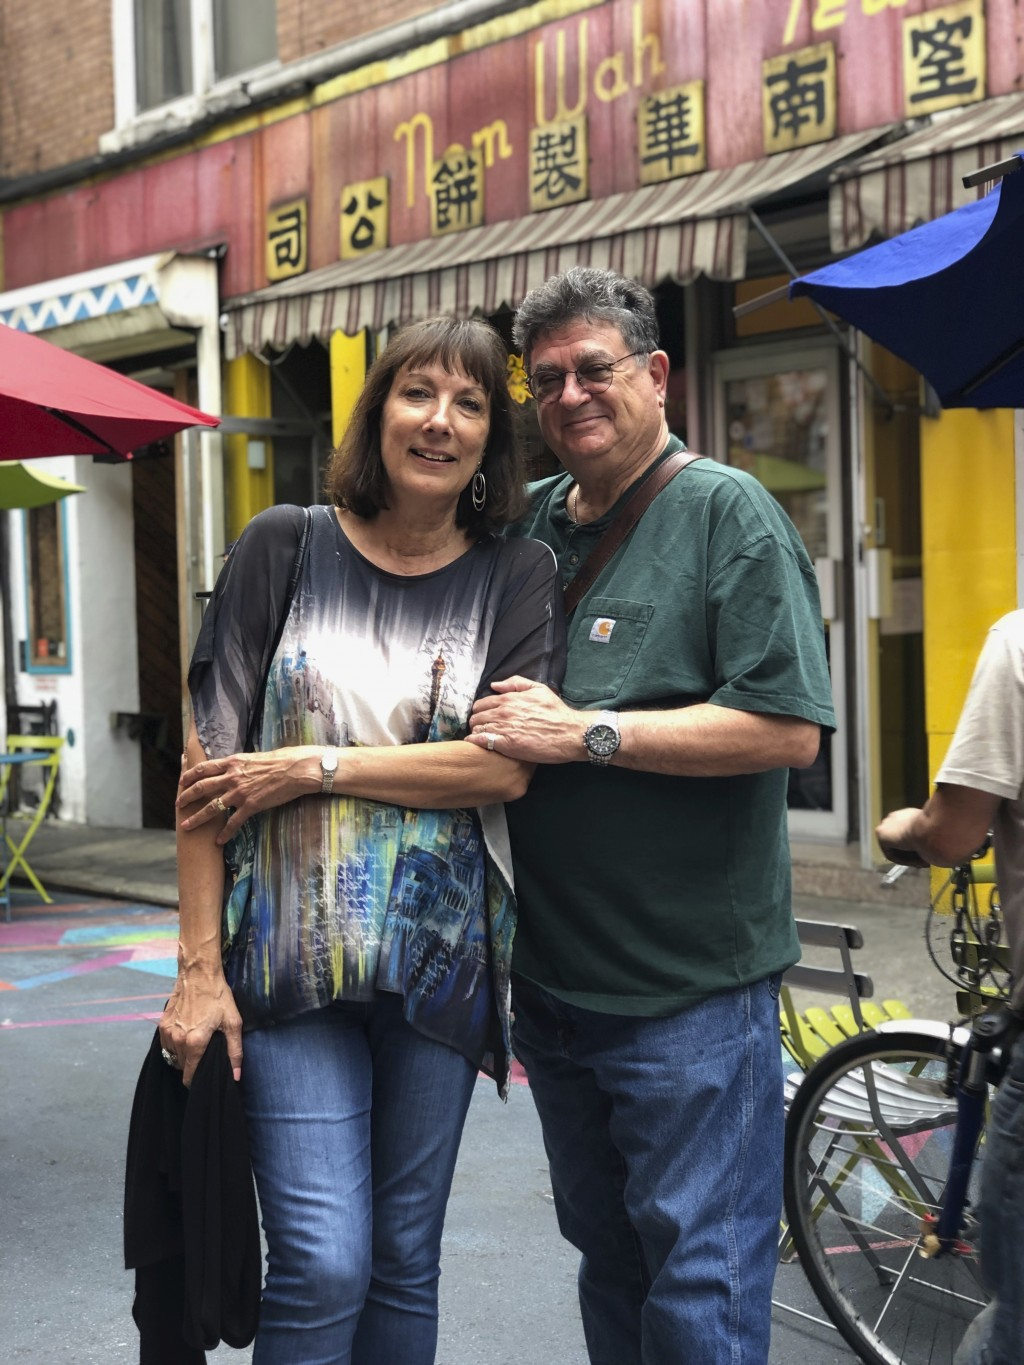 This September 2019 family photo shows Isaiah and Elana Kuperstein in the Chinatown neighborhood of New York. Isaiah Kuperstein died from COVID-19 on ...